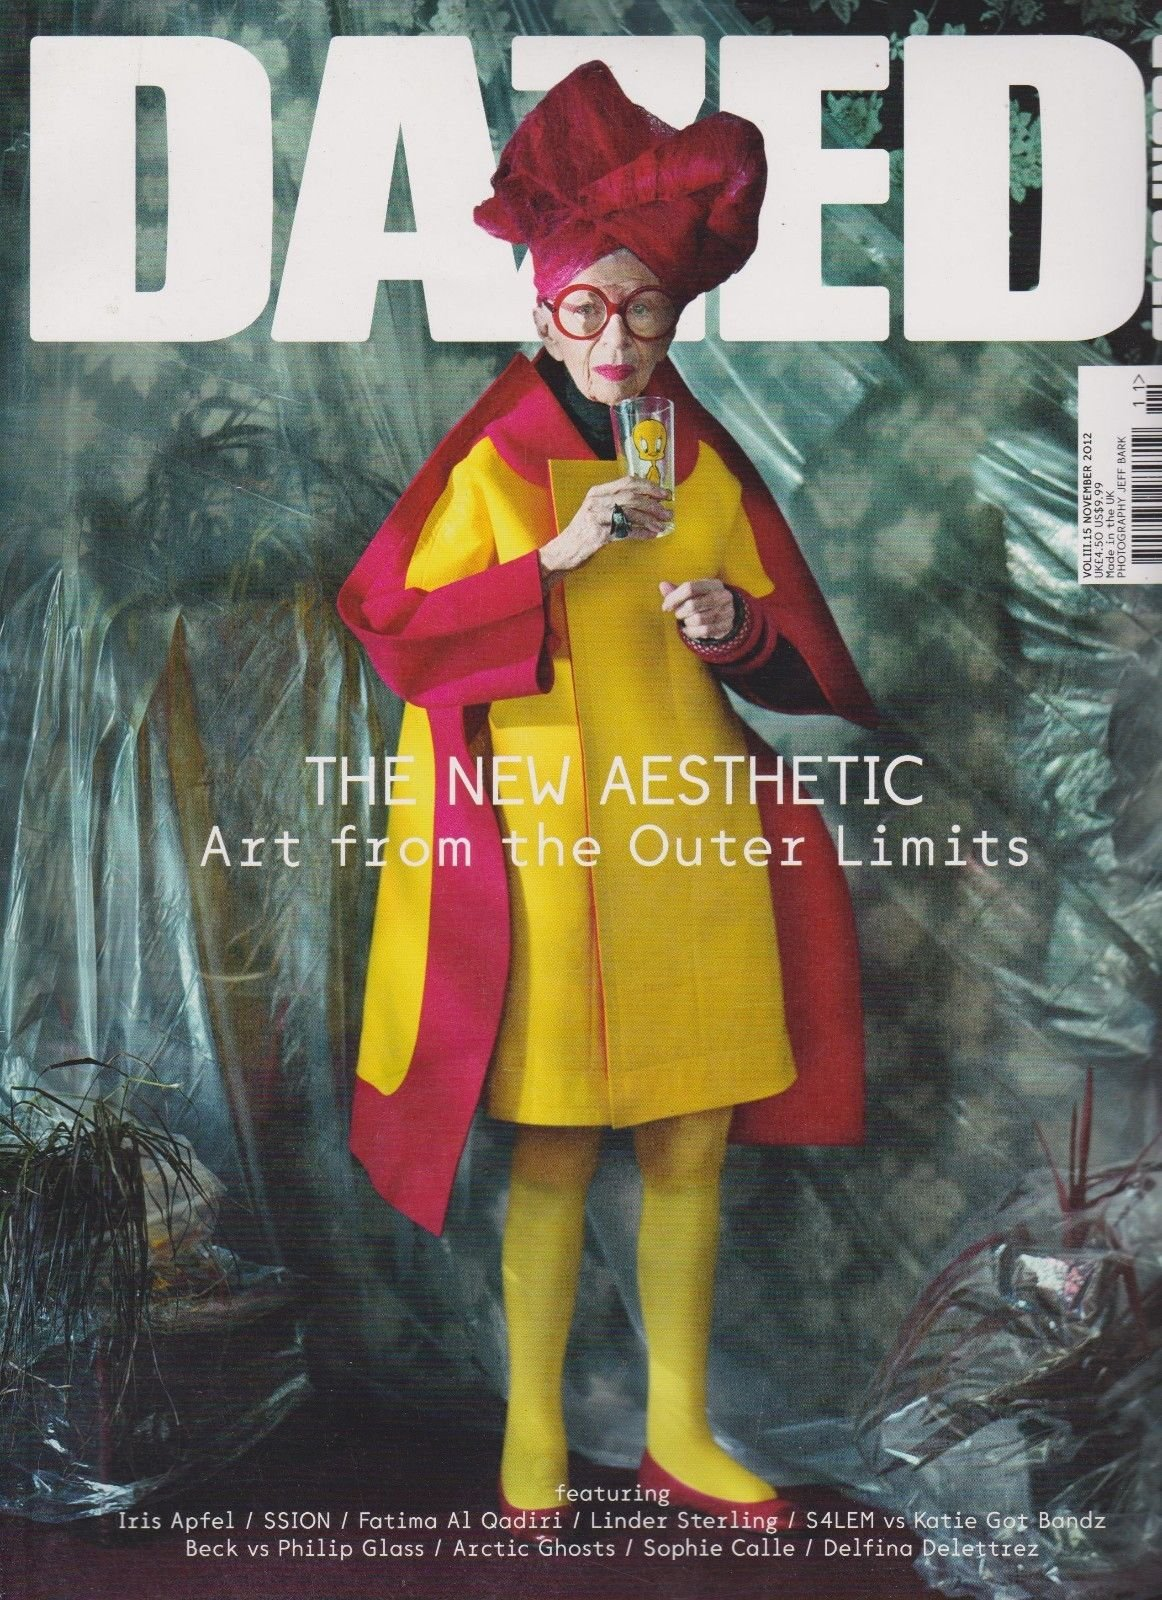 DAZED & CONFUSED Magazine Nov 2012, THE NEW AESTHETIC, ART FROM THE OUTER LIMITS